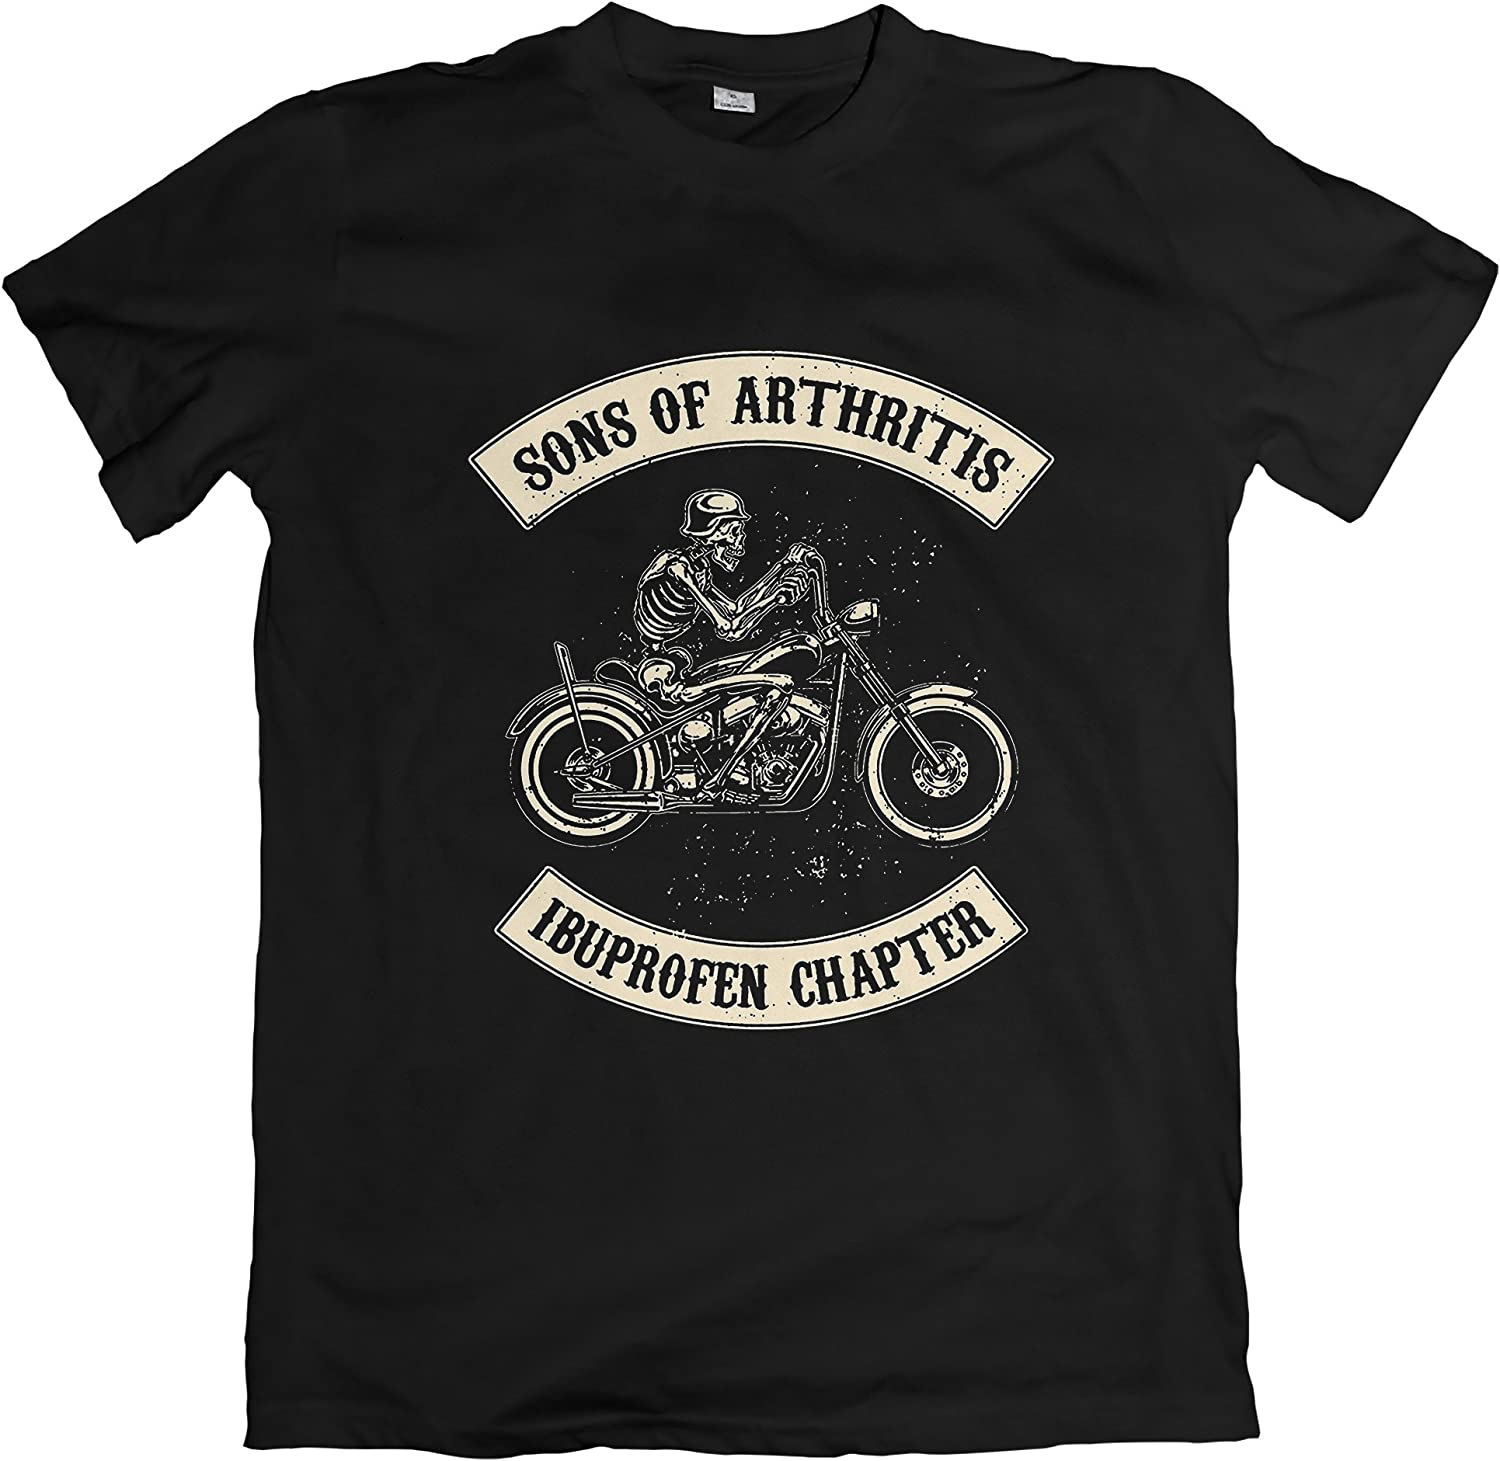 Loose Fit and Sizes Tees In The Hood Sons of Arthritis Tshirt